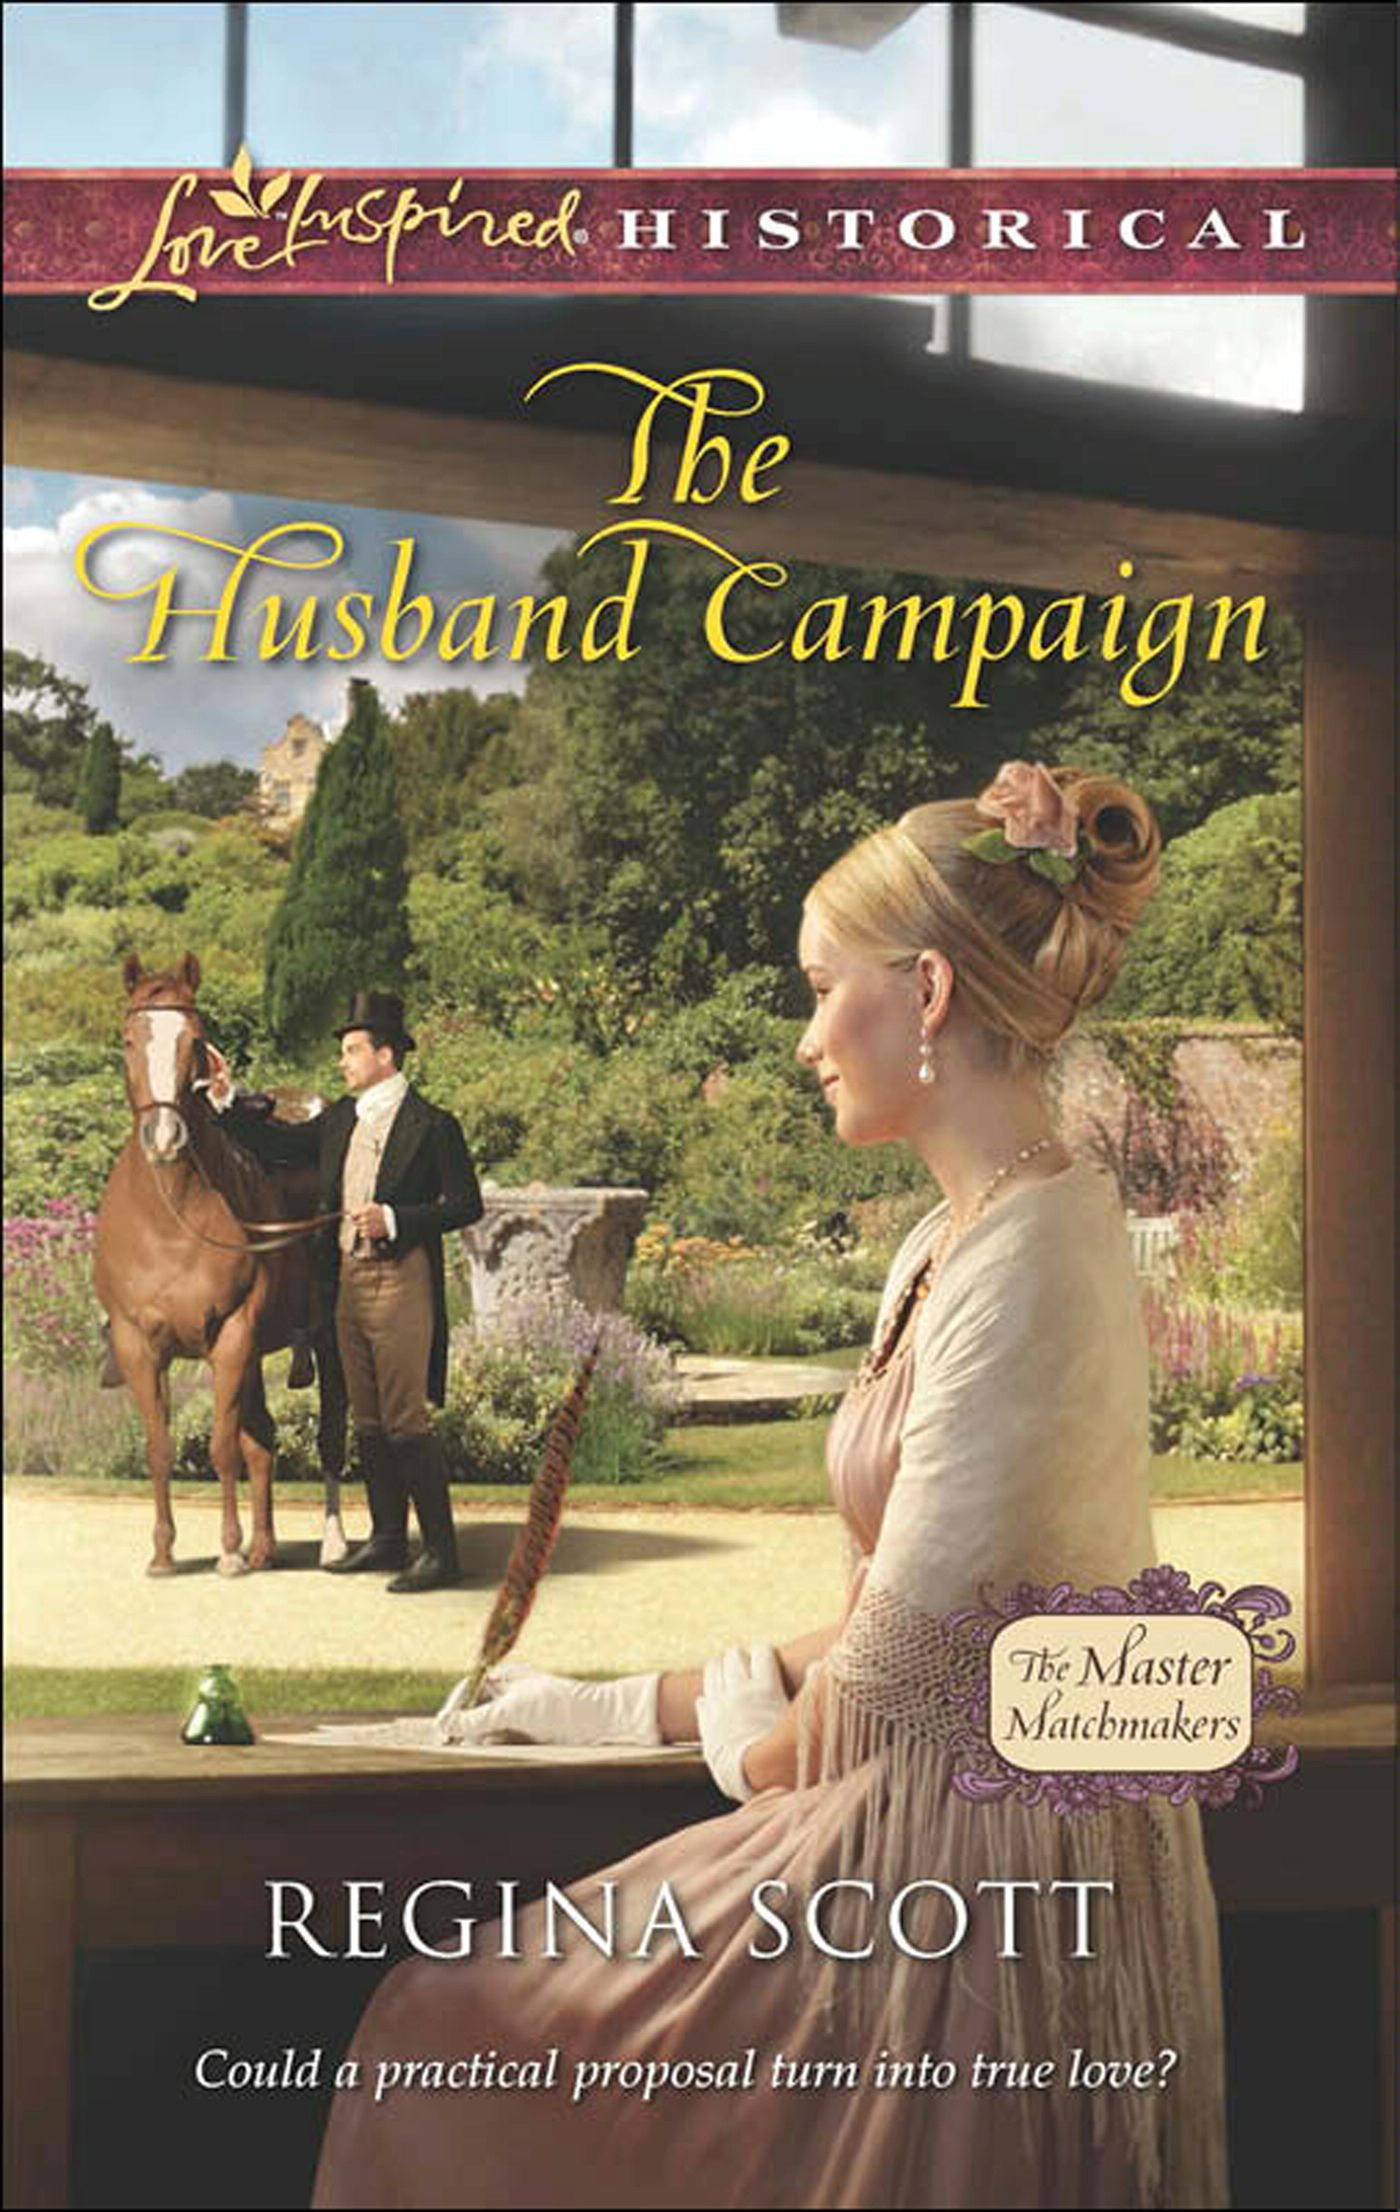 The Husband Campaign (Mills & Boon Love Inspired Historical) (The Master Matchmakers - Book 3)